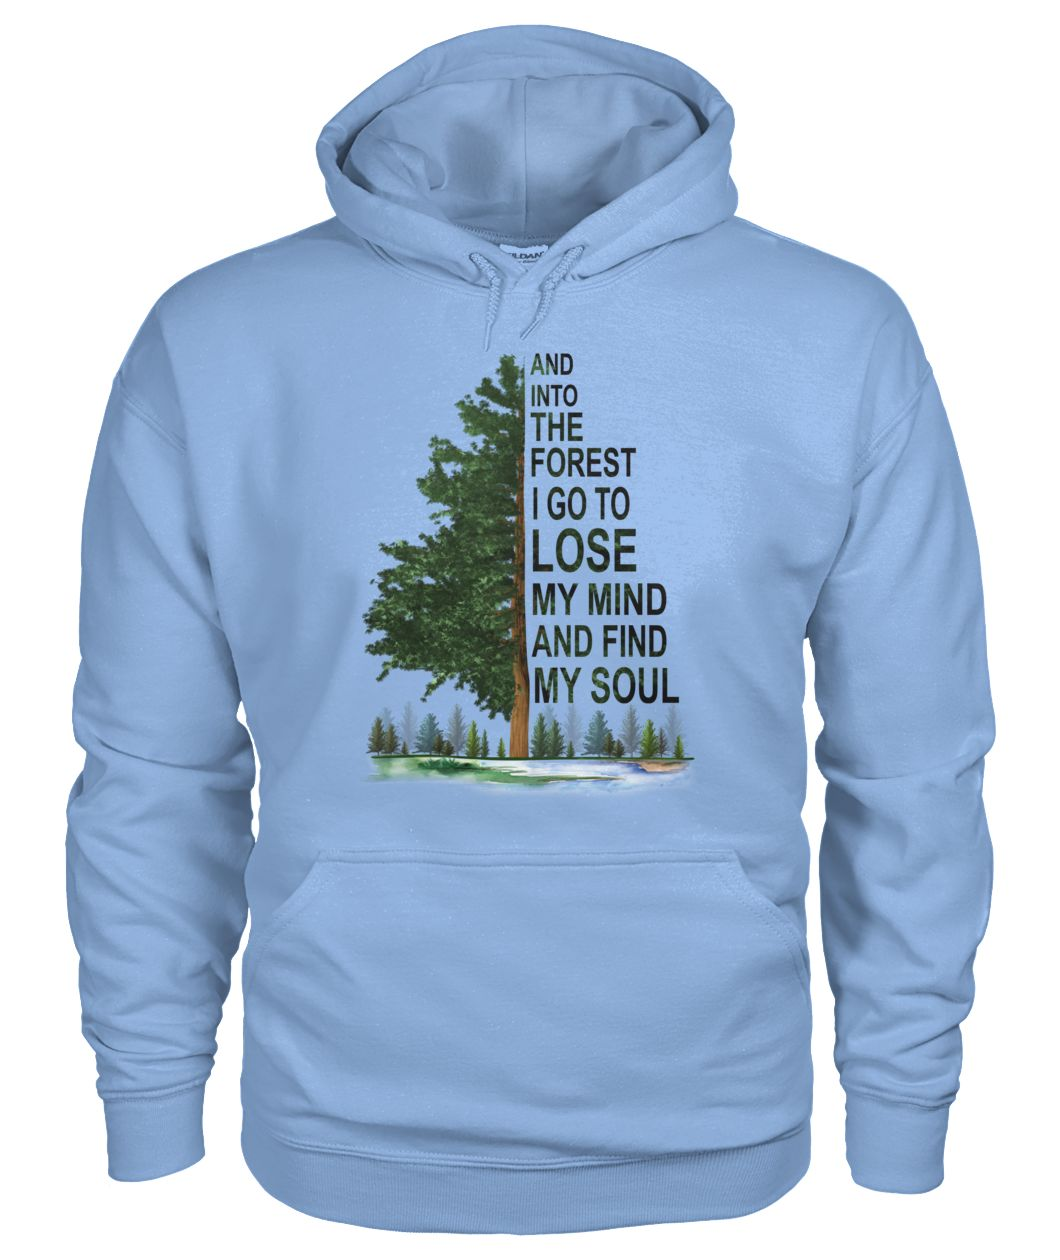 And into the forest I go to lose my mind and find my soul gildan hoodie